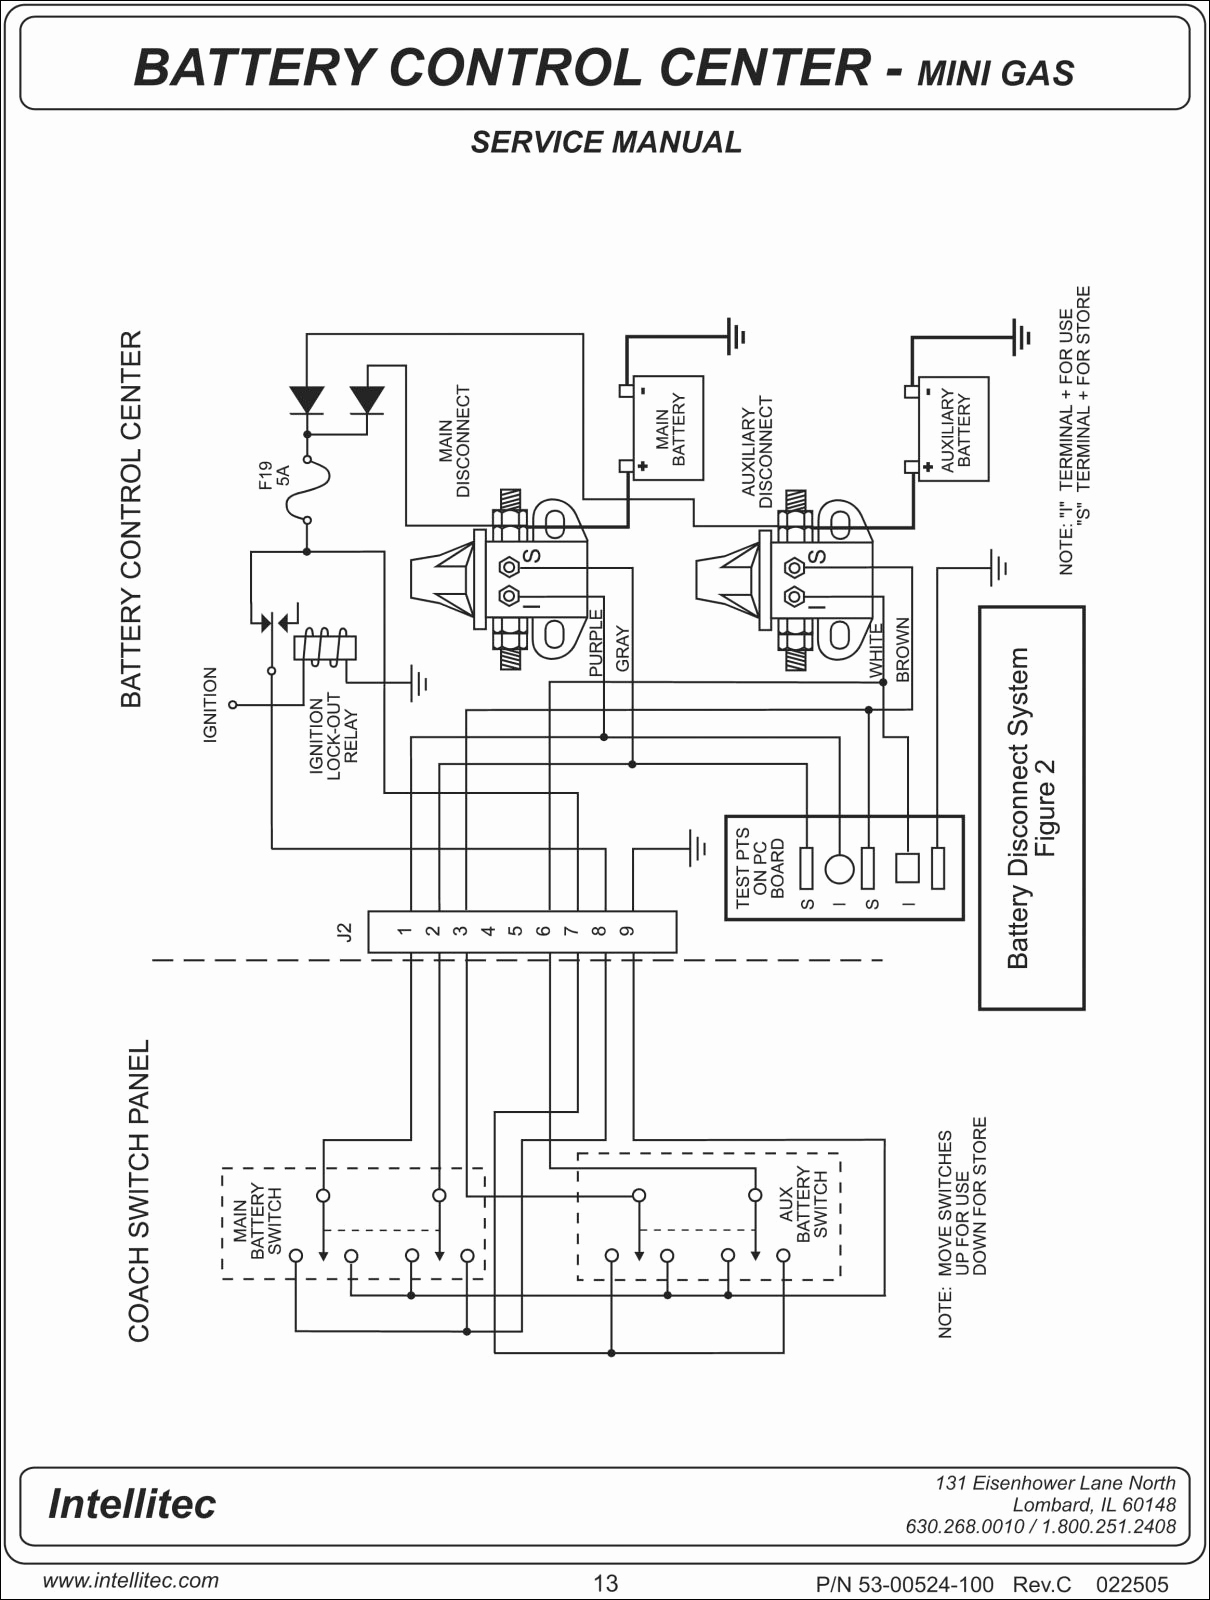 get generac 200 amp transfer switch wiring diagram sample. Black Bedroom Furniture Sets. Home Design Ideas